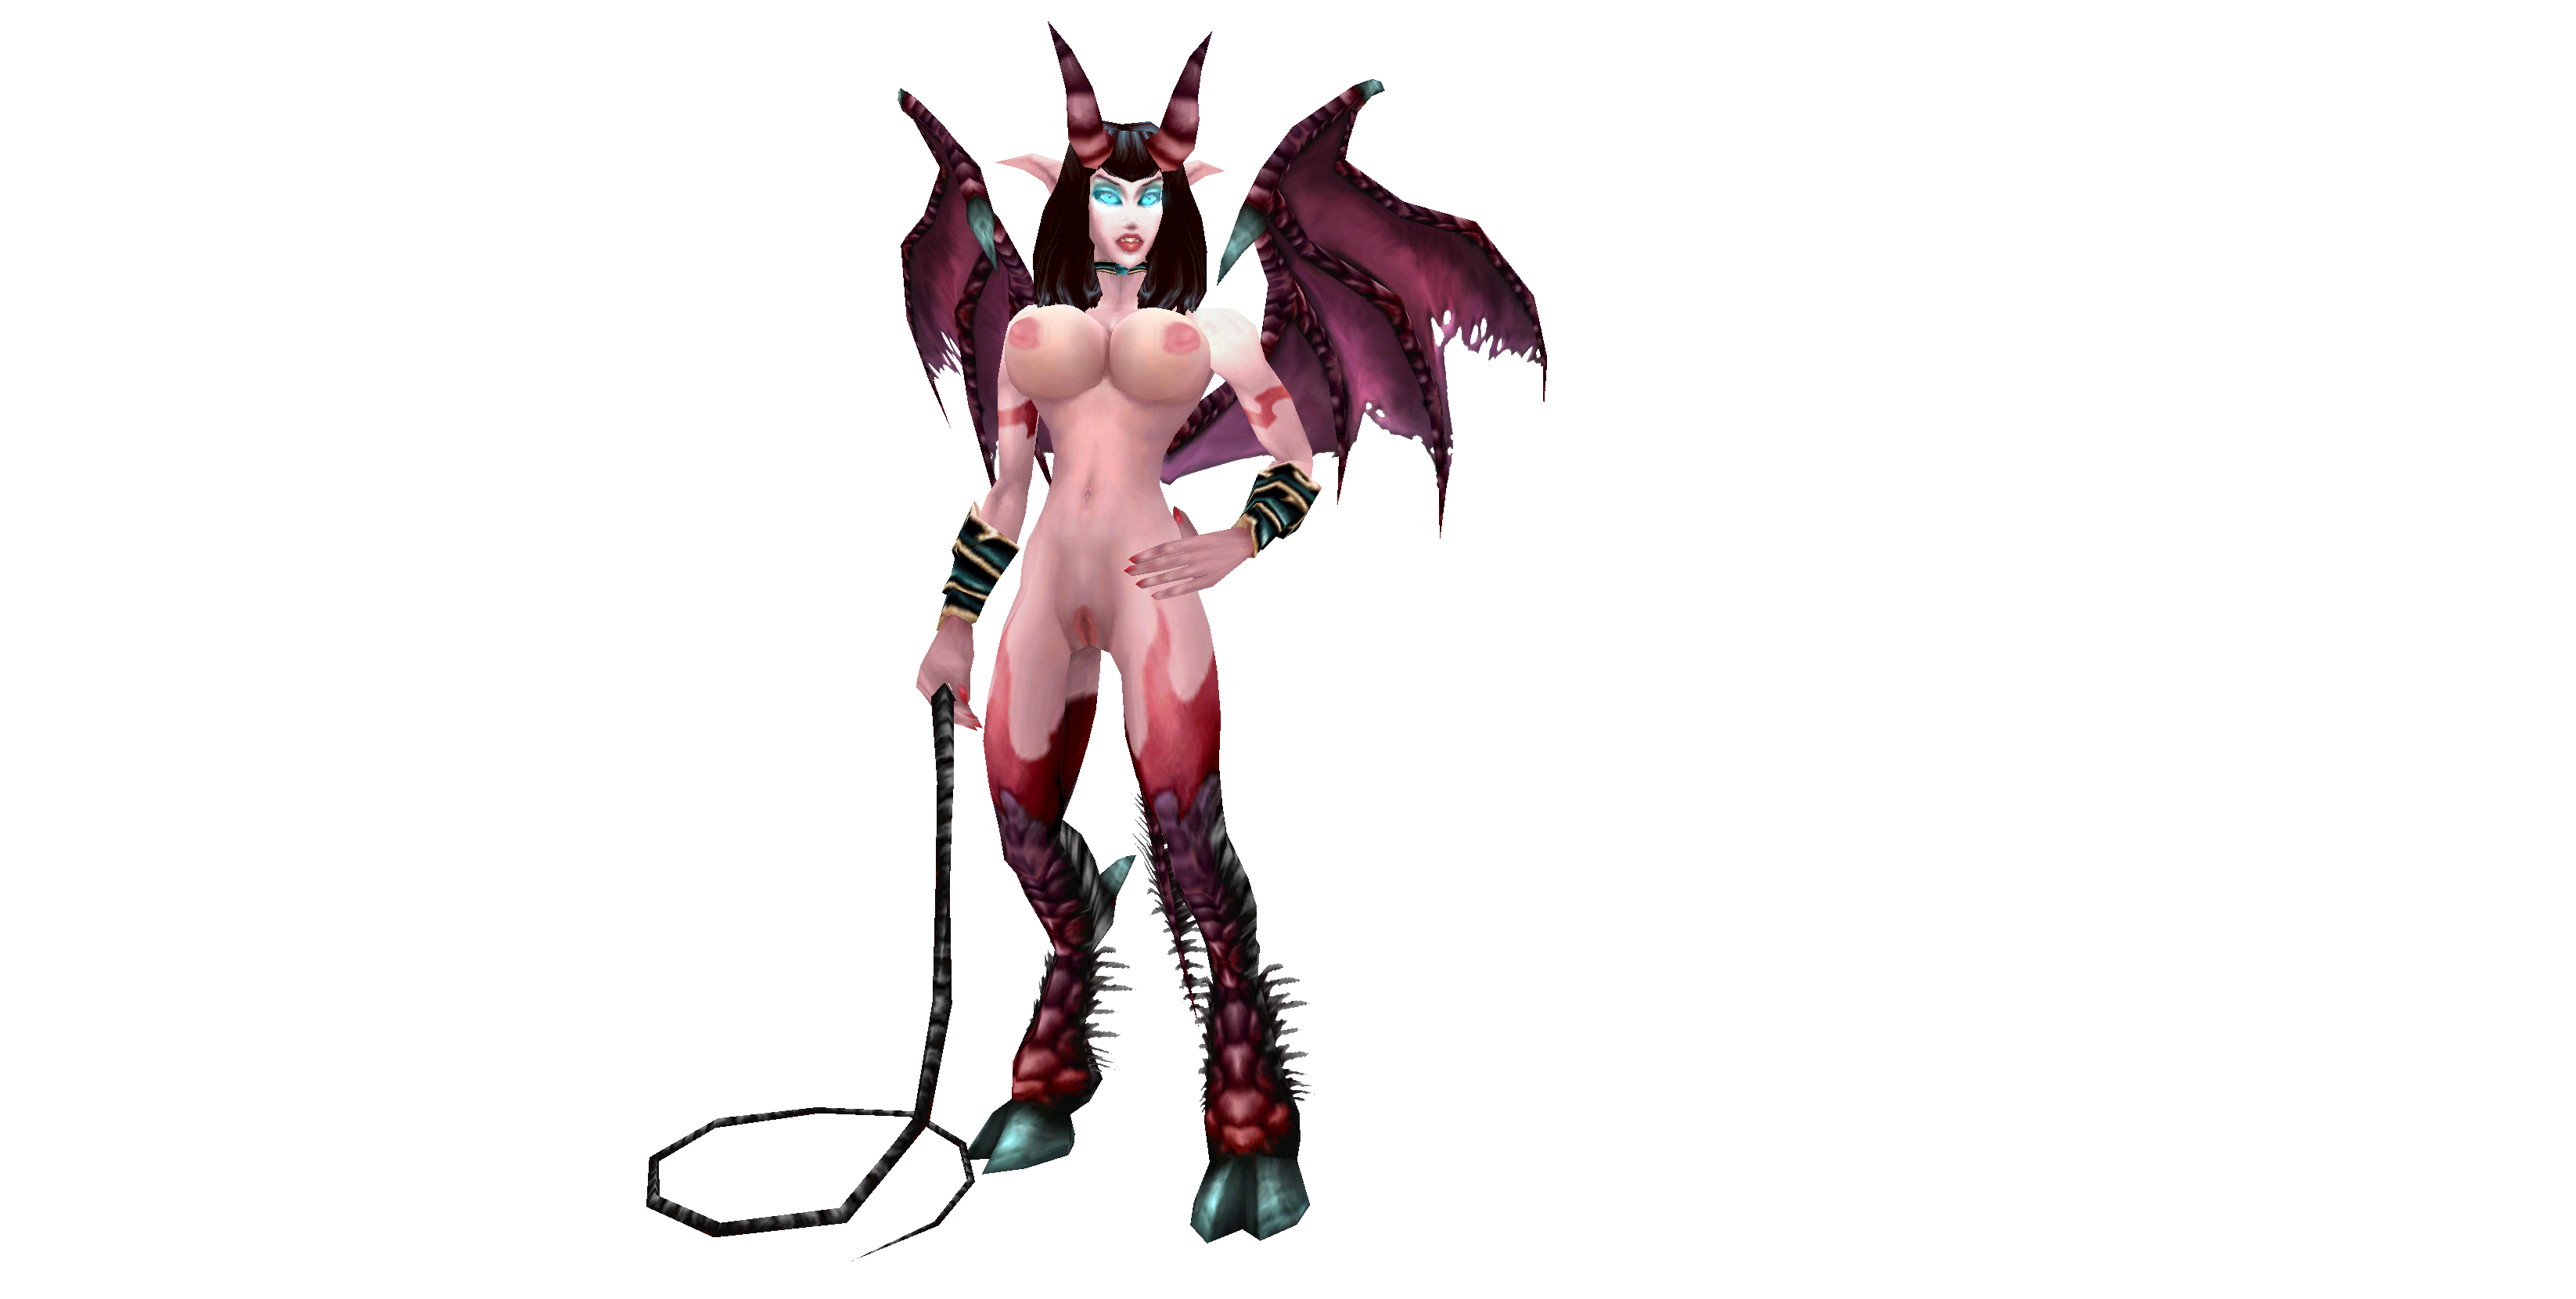 World of warcraft nude clothes mod hentai pictures